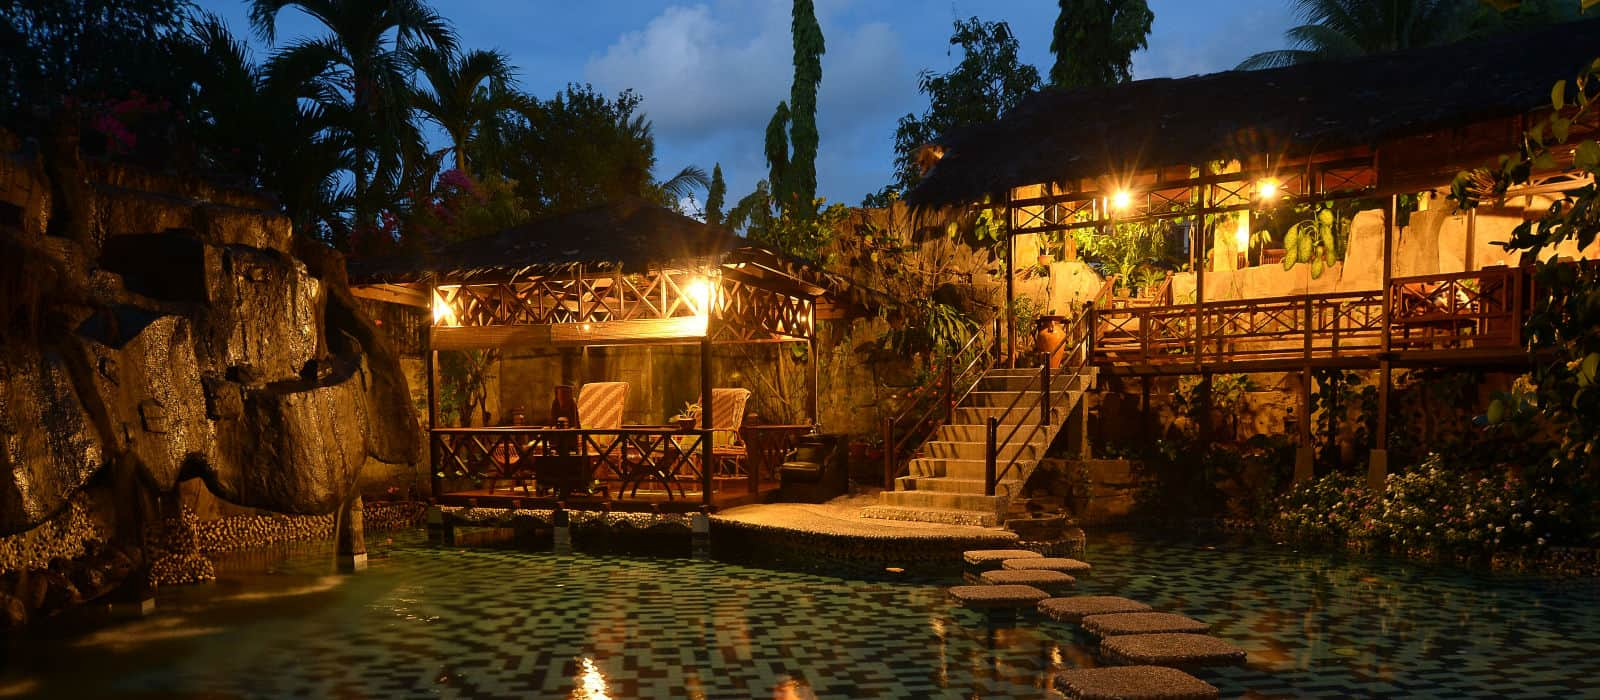 Matana Spa at night